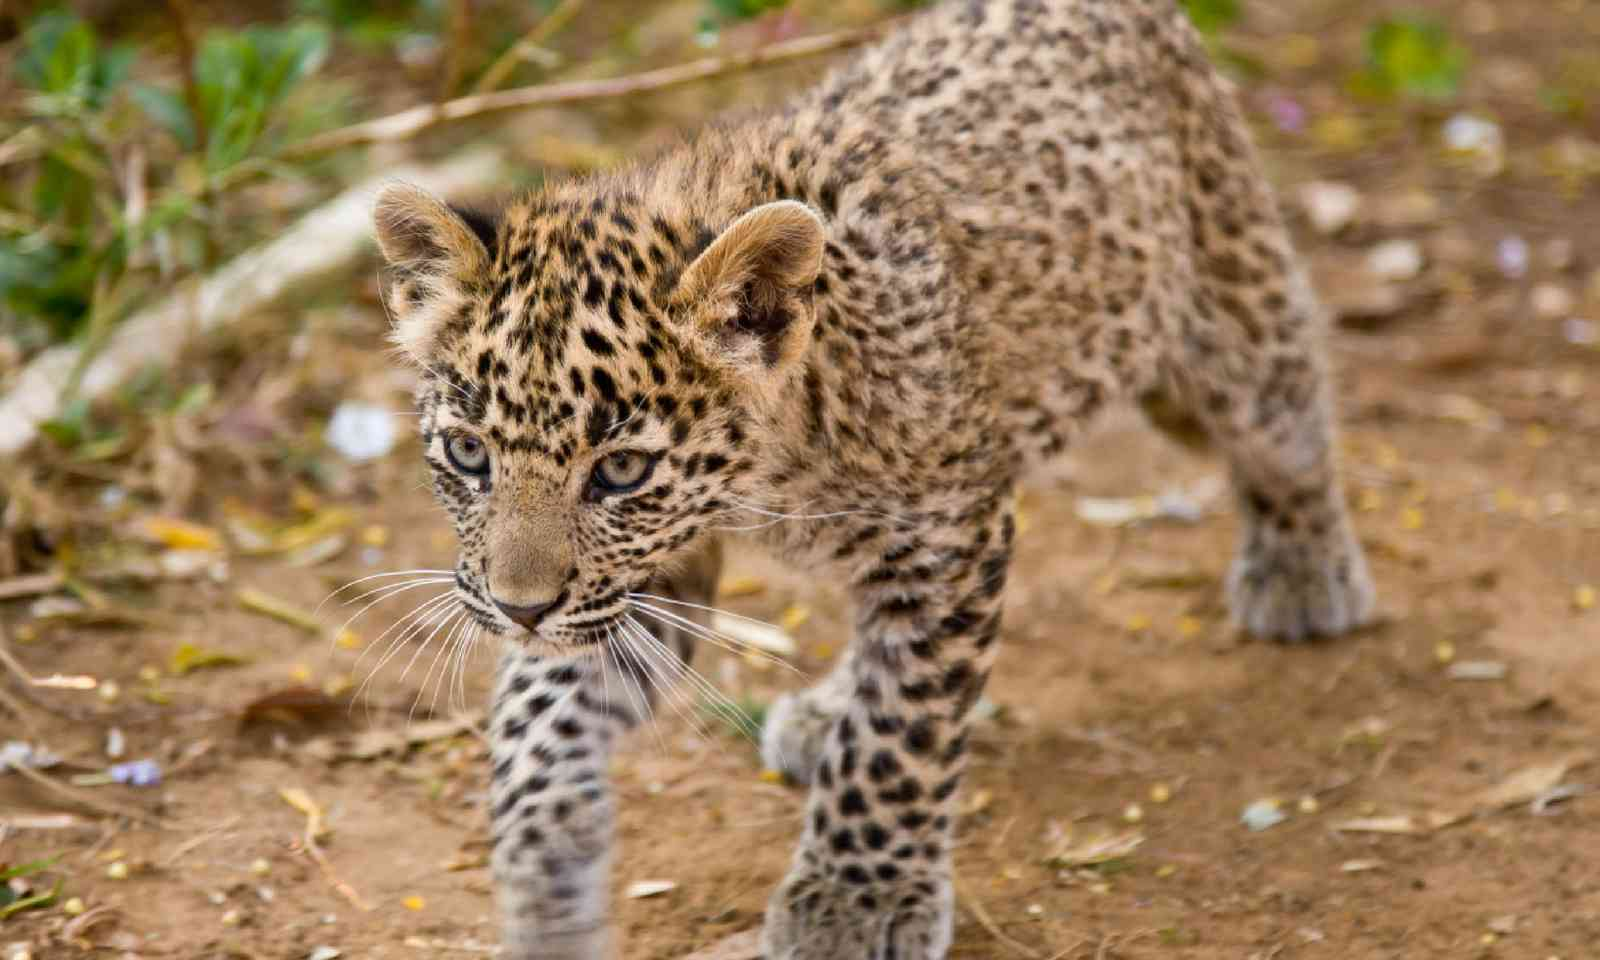 Young leopard cub on the prowl (Shutterstock)